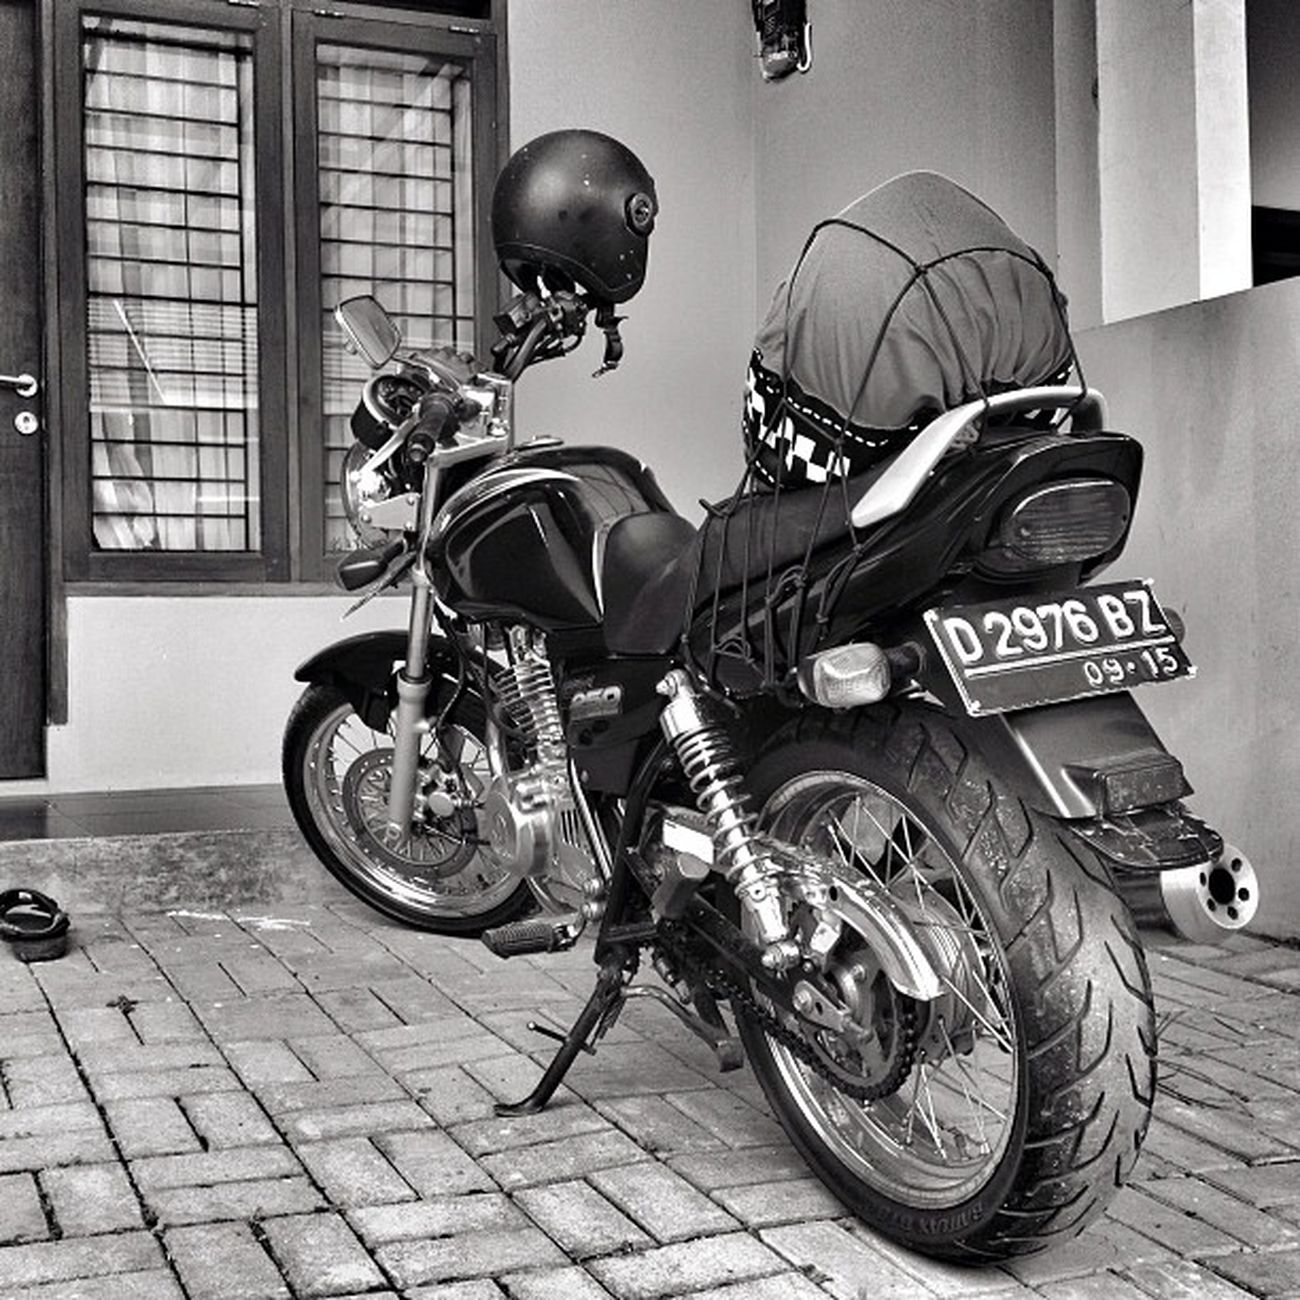 Iphoneonly Bike Suzuki Gsx250 gs250 bw bnw blackandwhite monochrome